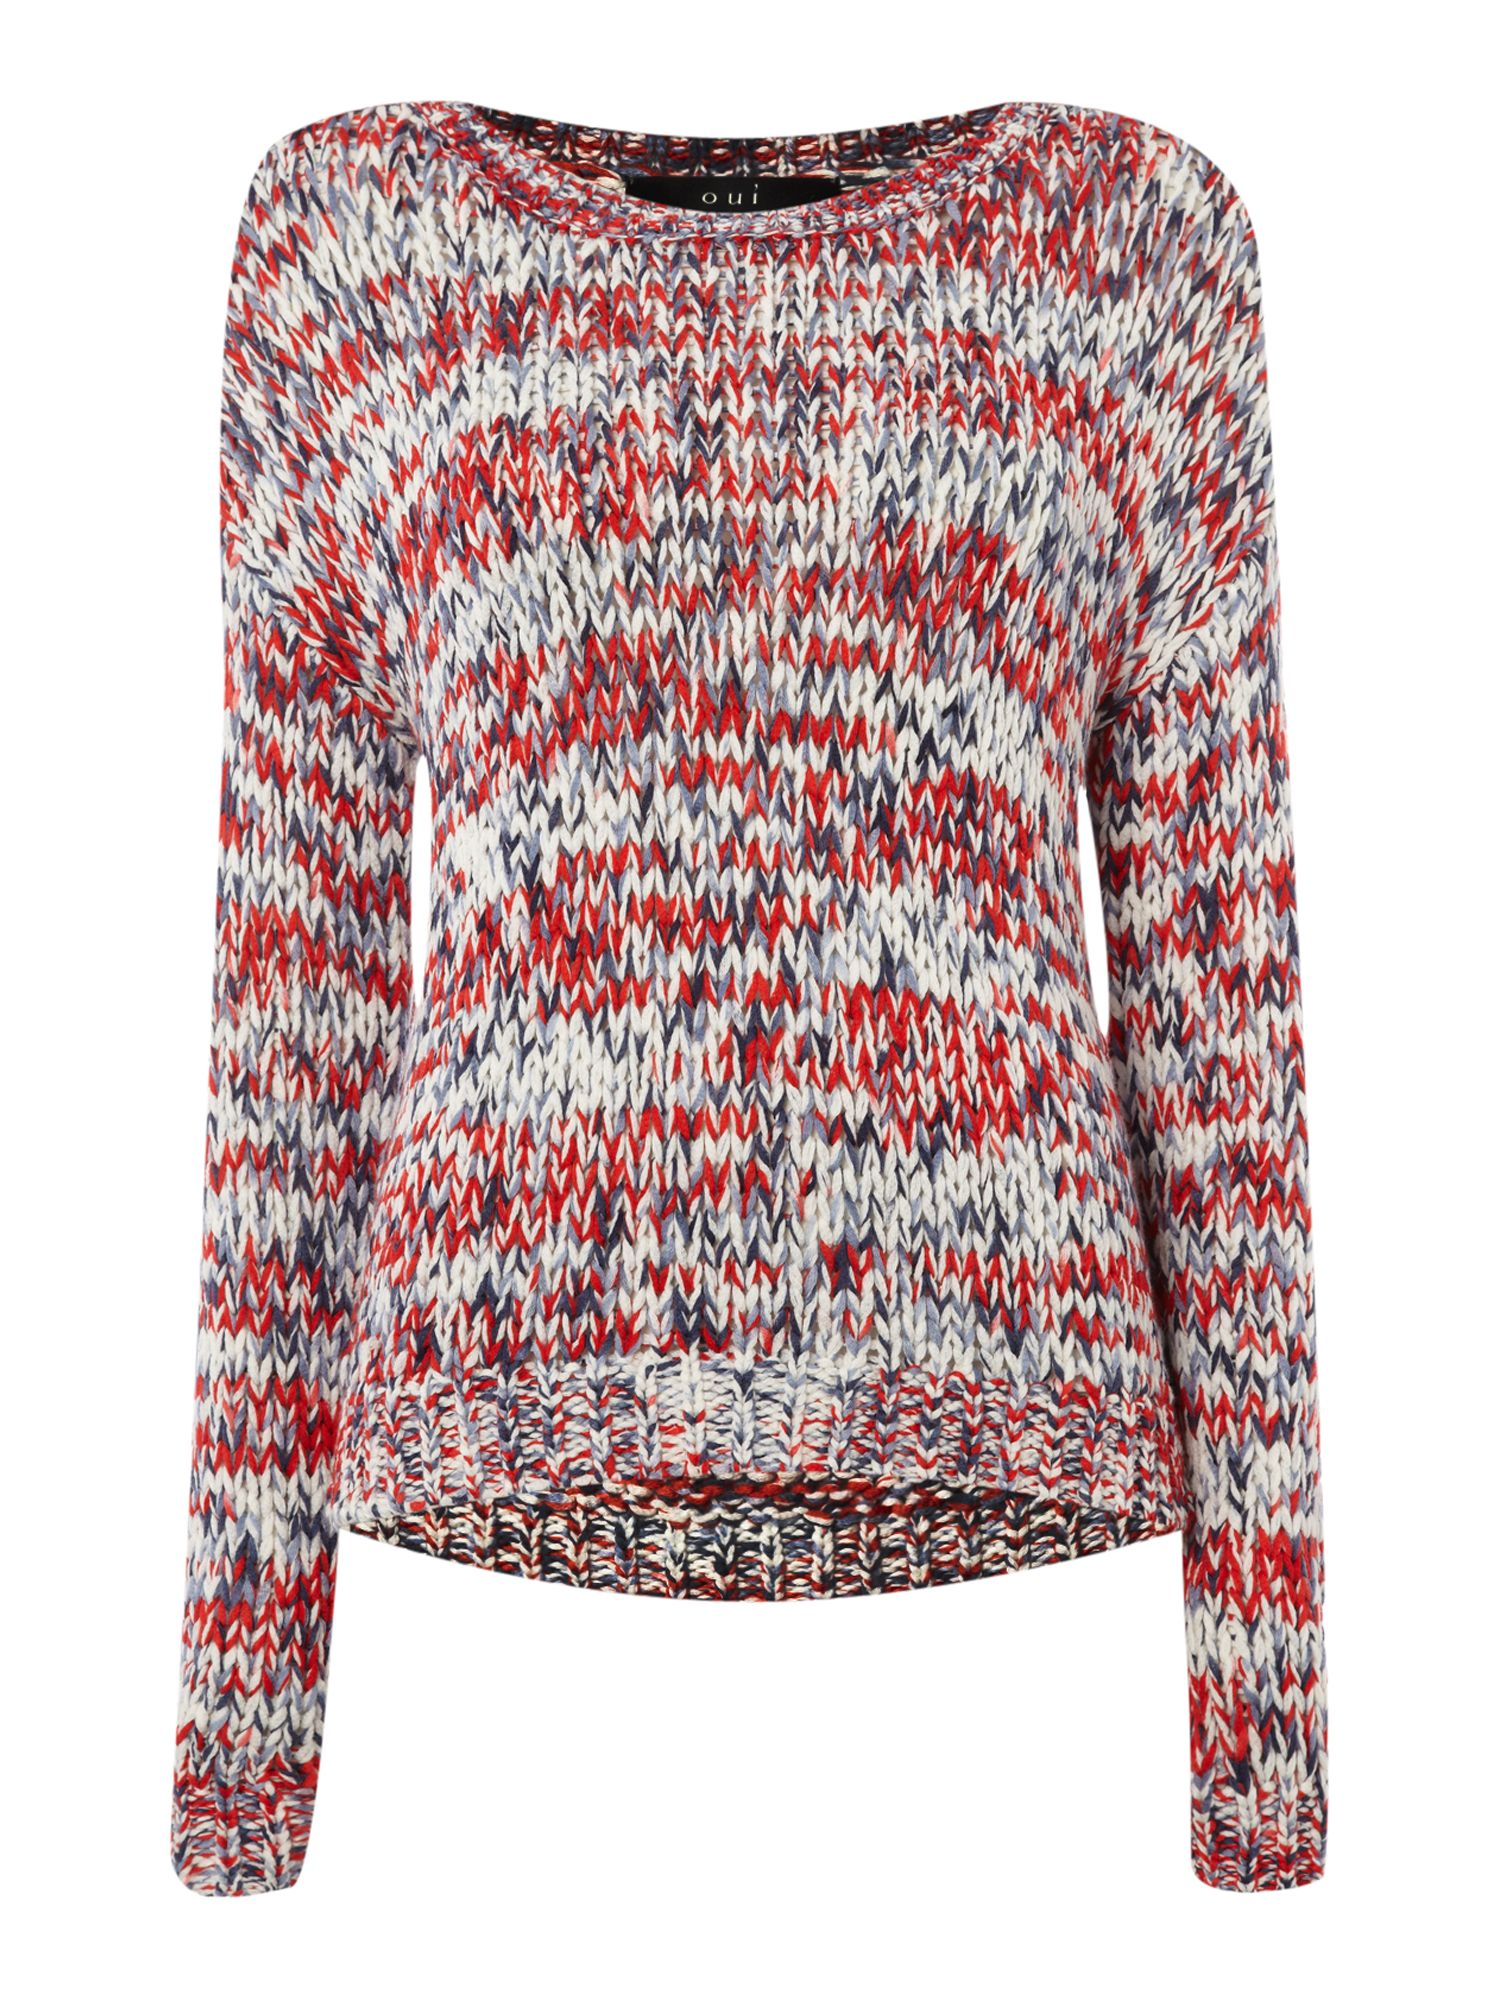 Multi-coloured loose weave knitted jumper